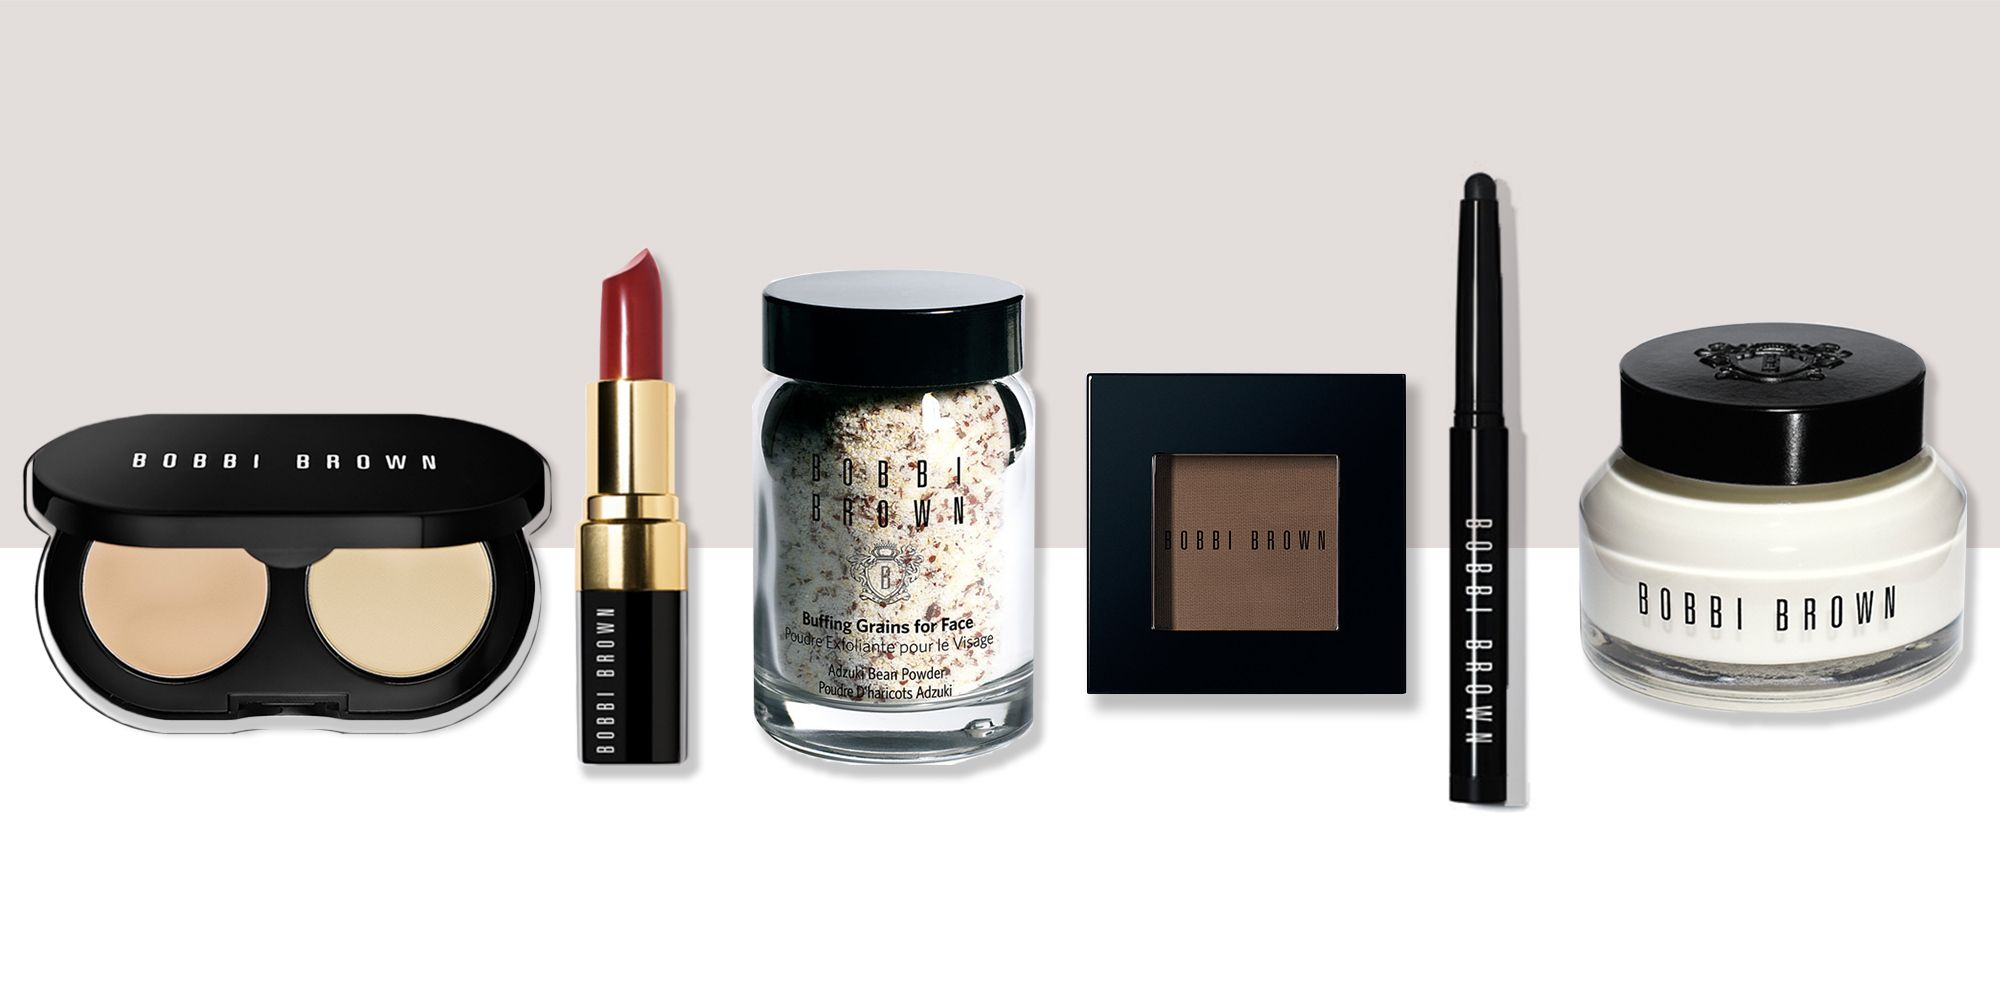 Best bobbi brown makeup